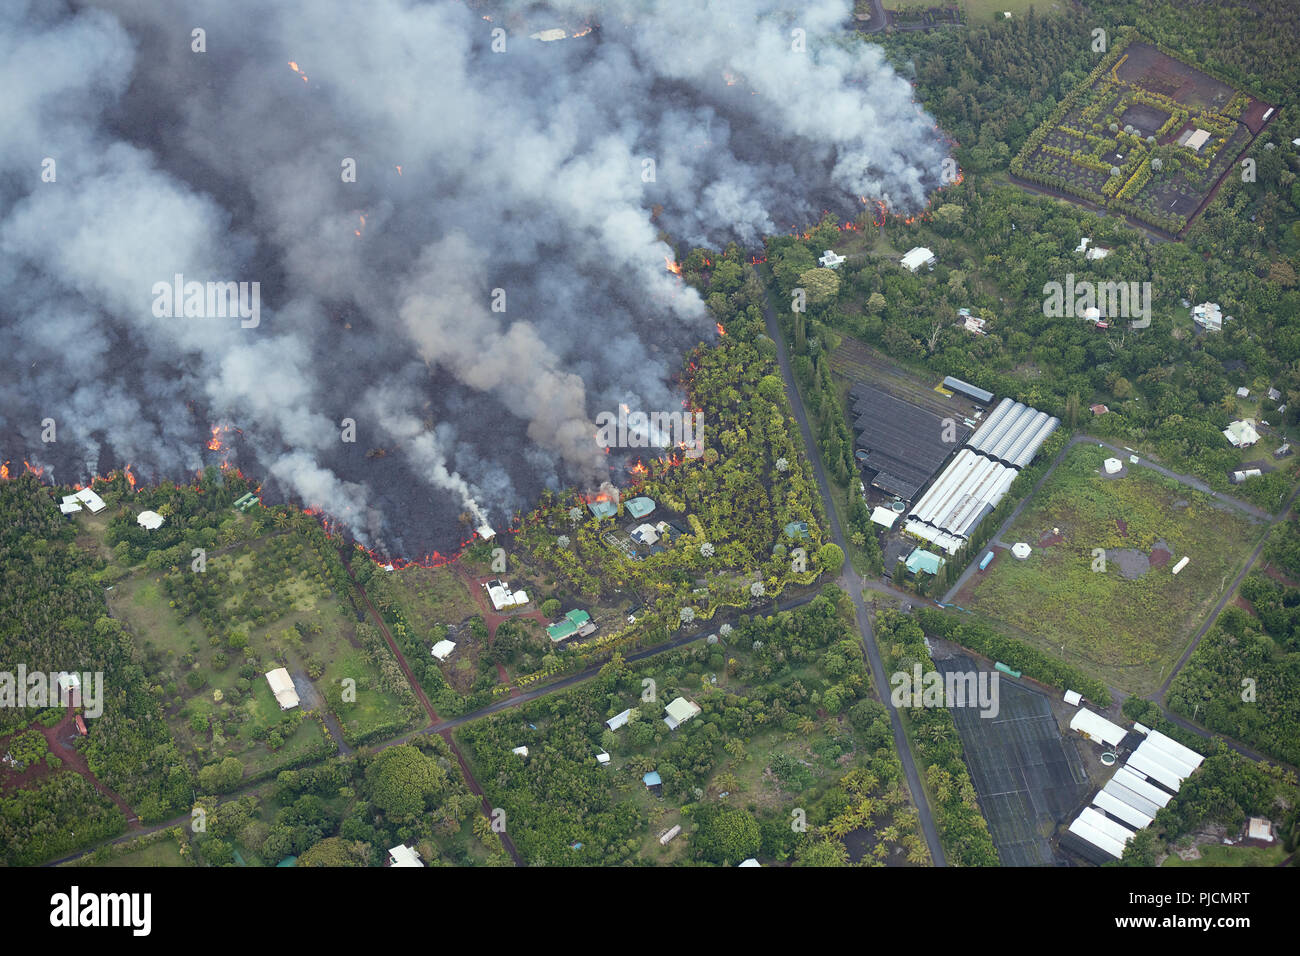 lava originating from Kilauea Volcano, erupting from fissure 8 in Leilani Estates, near Pahoa, flows through lower Puna into Kapoho, destroying agricu - Stock Image